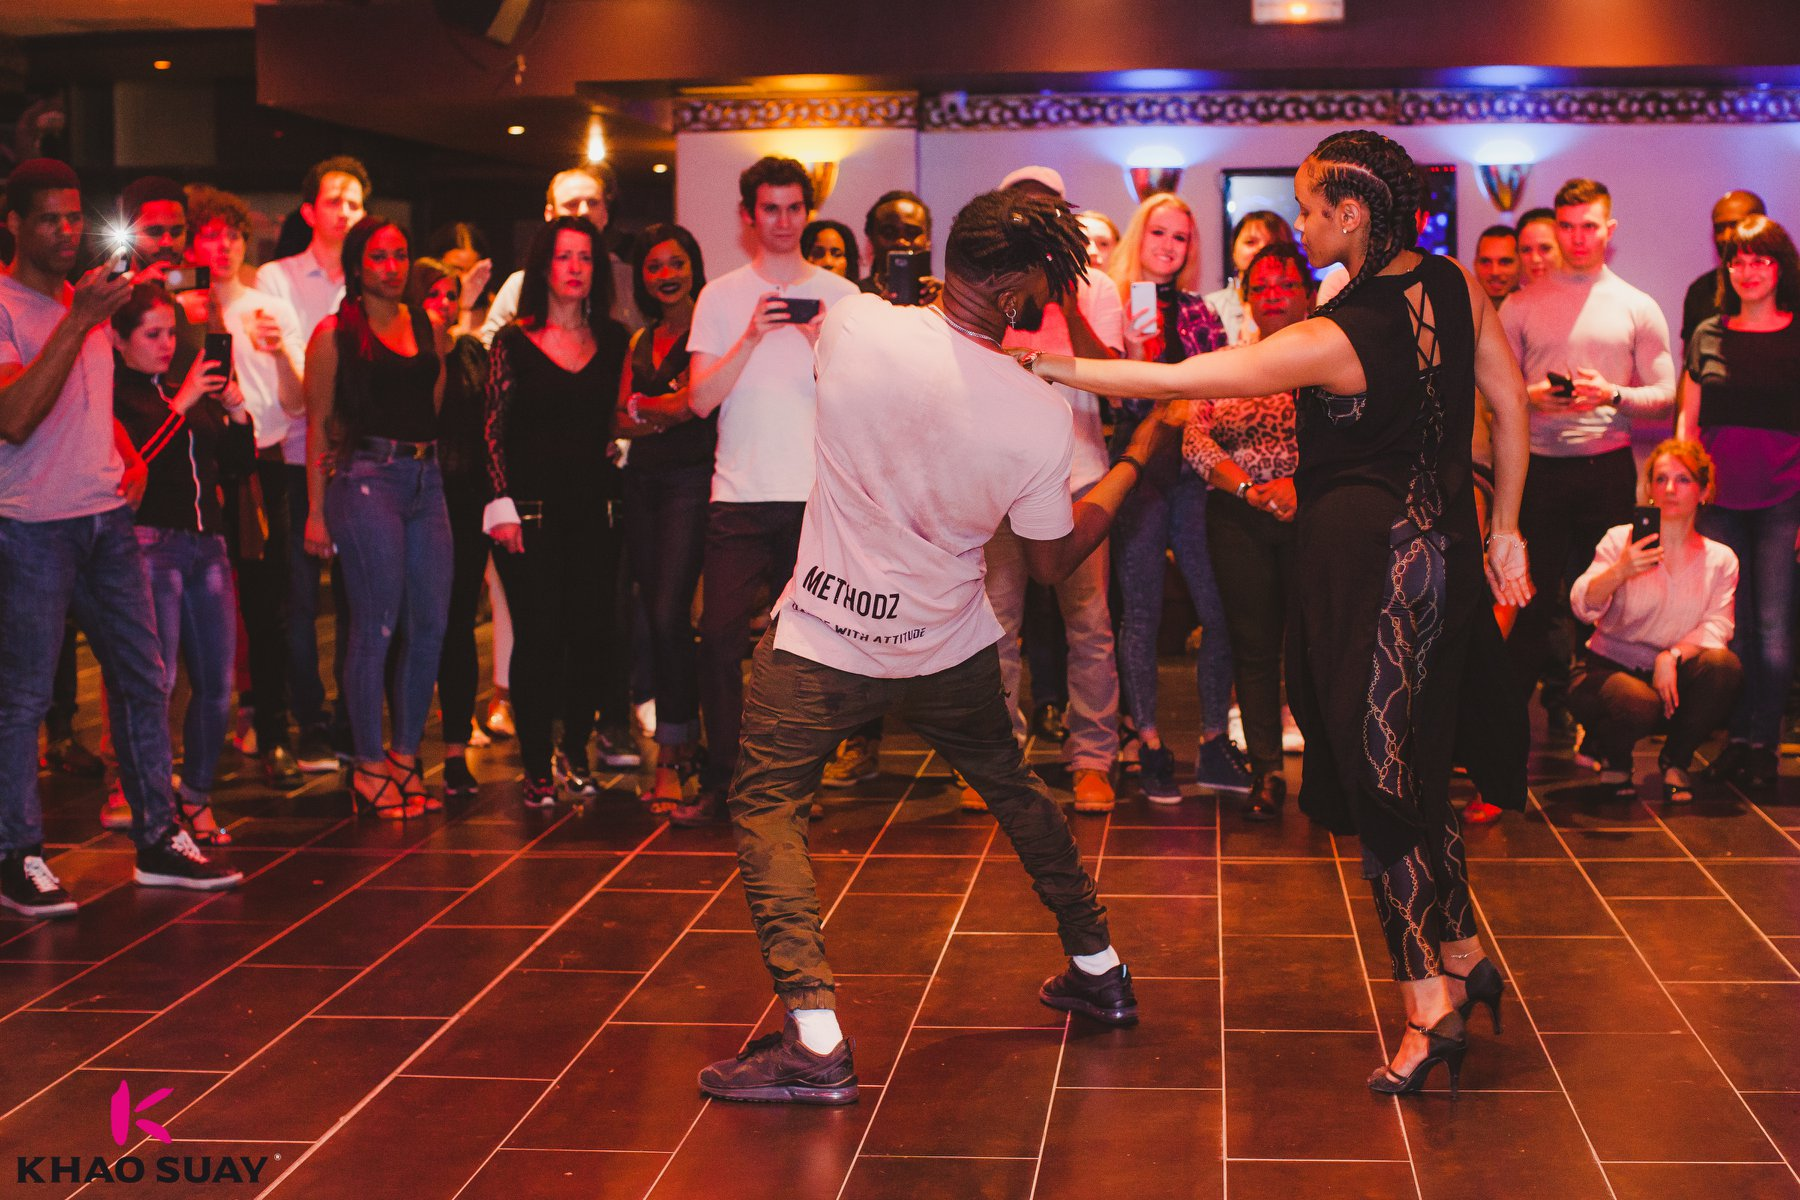 topic : cours de salsa paris topic : cours de salsa cubaine paris topic : cours de salsa débutant paris topic : cours de salsa gratuit paris topic : cours de salsa paris 11 topic : cours de salsa paris 12 topic : cours de salsa paris 13 topic : cours de salsa paris 14 topic : cours de salsa paris 15 topic : cours de salsa paris 16 topic : cours de salsa paris 17 topic : cours de salsa paris 18 topic : cours de salsa paris 20 topic : cours de salsa paris pas cher topic : cours particulier salsa paris